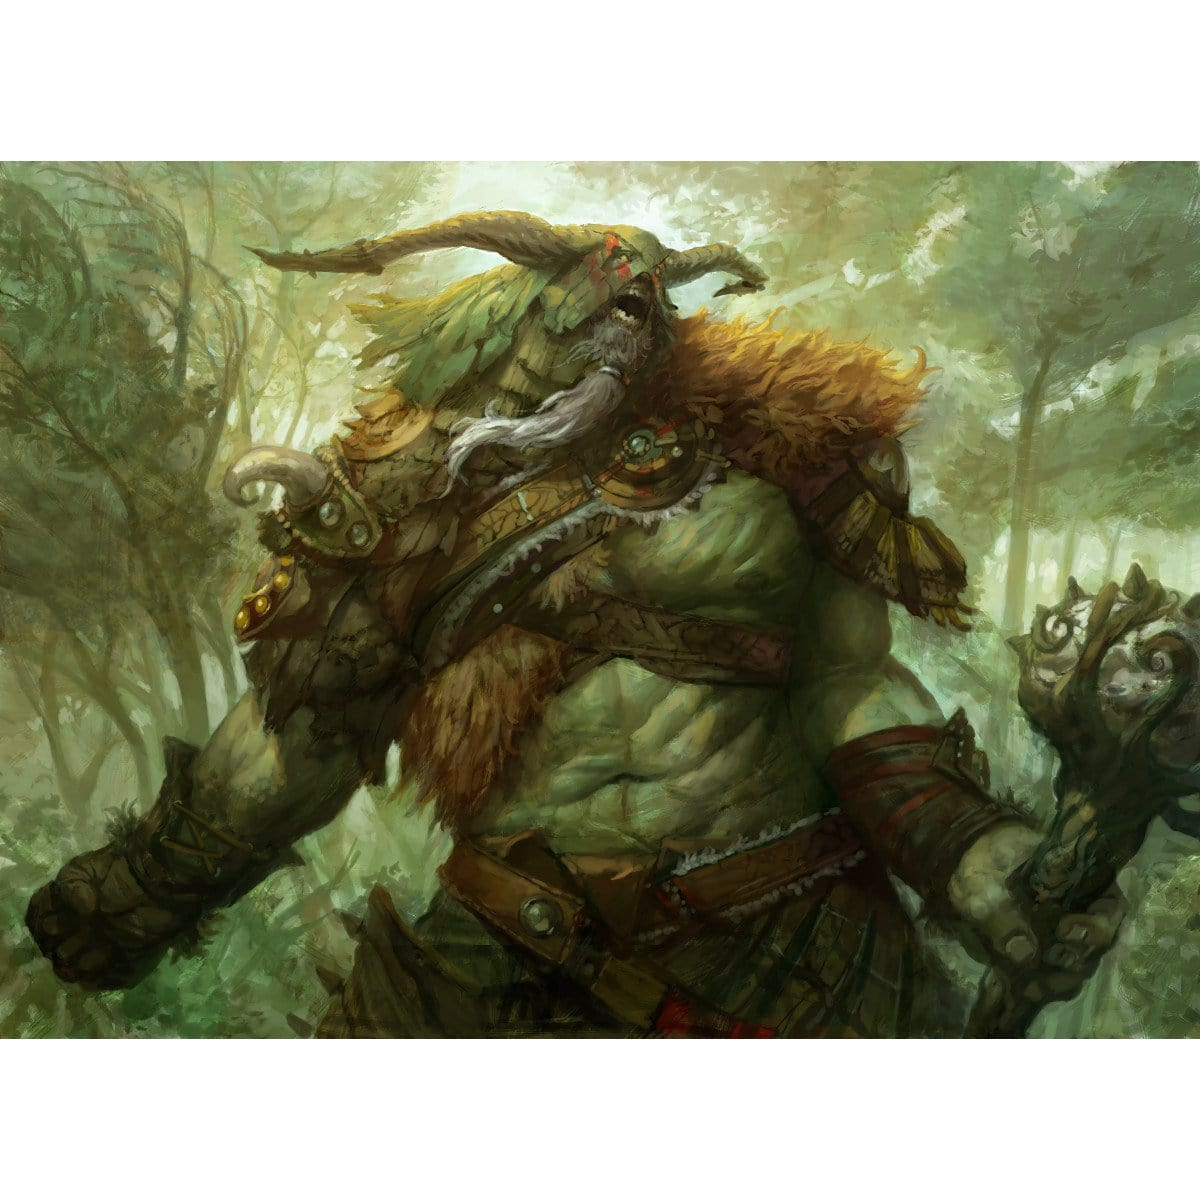 Primeval Titan Print - Print - Original Magic Art - Accessories for Magic the Gathering and other card games